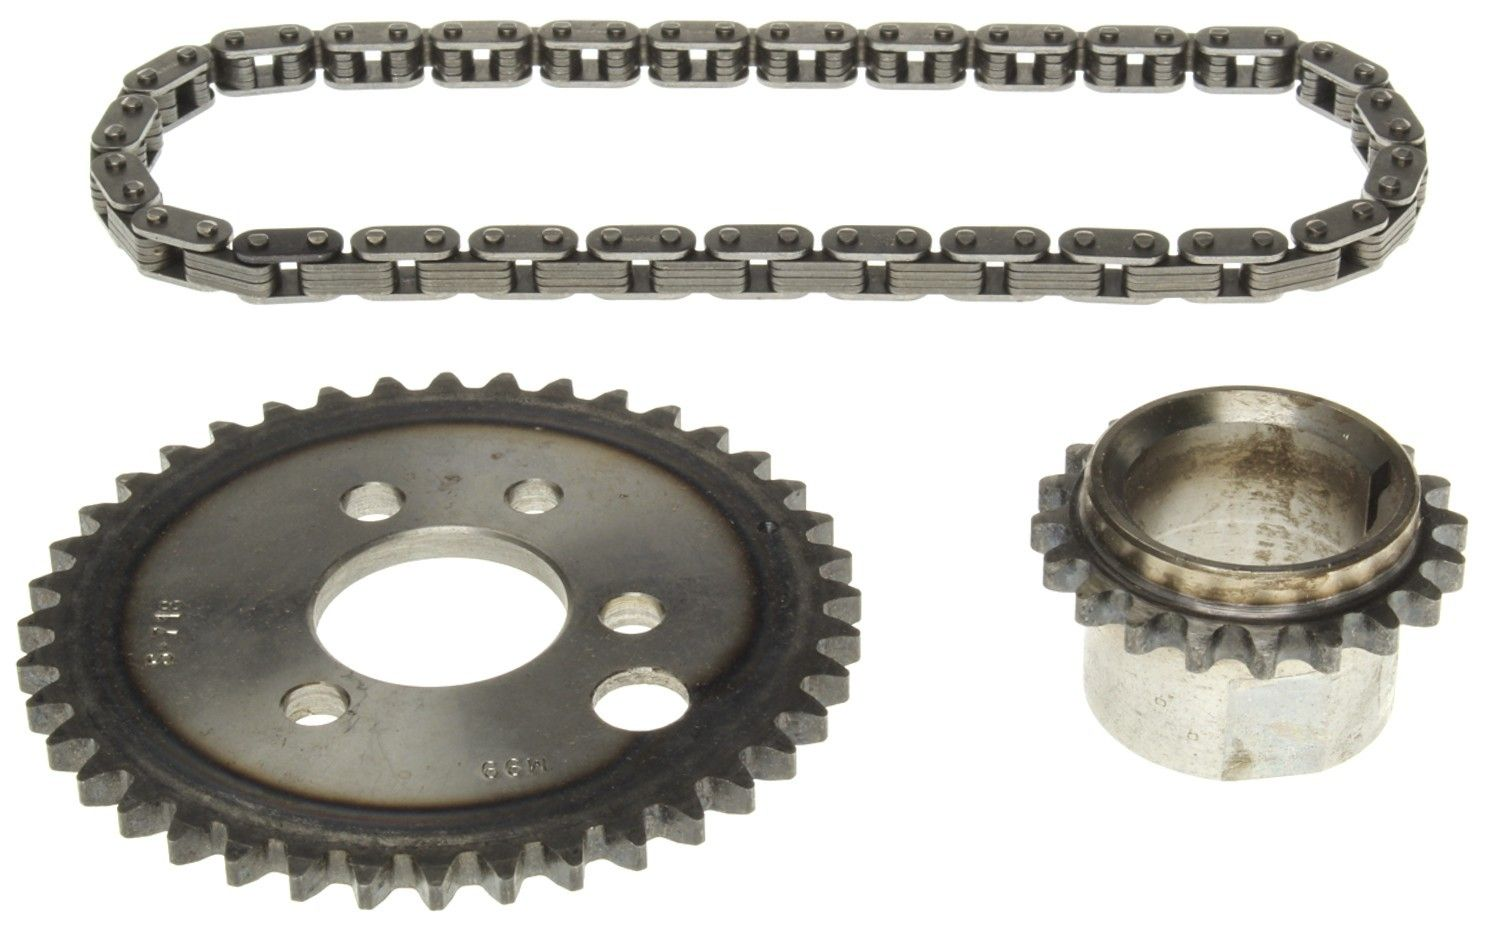 Buick Electra Engine Timing Set Replacement Cloyes Seal Power Belt 1988 6 Cyl 38l Victor Gaskets 9 3063 Includes Cam Sprocket Crank And Chain With 3 Bolt